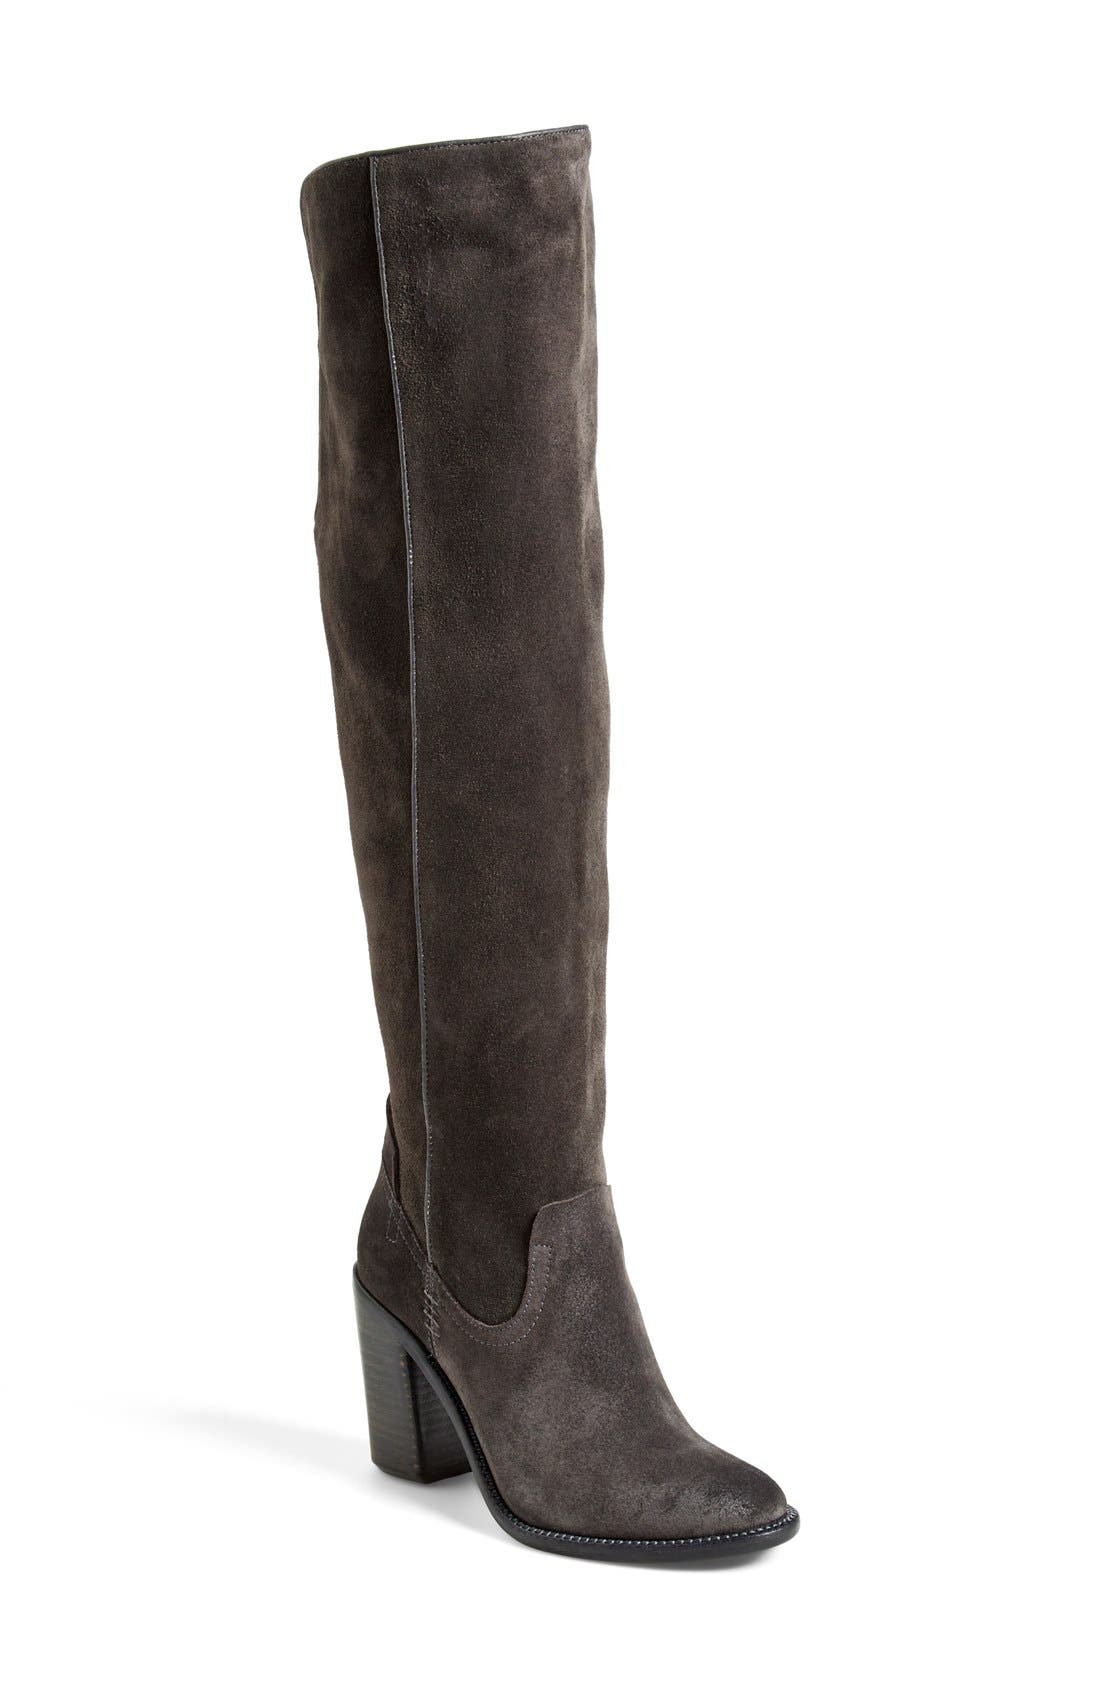 'Ohanna' Over the Knee Boot,                             Main thumbnail 1, color,                             053